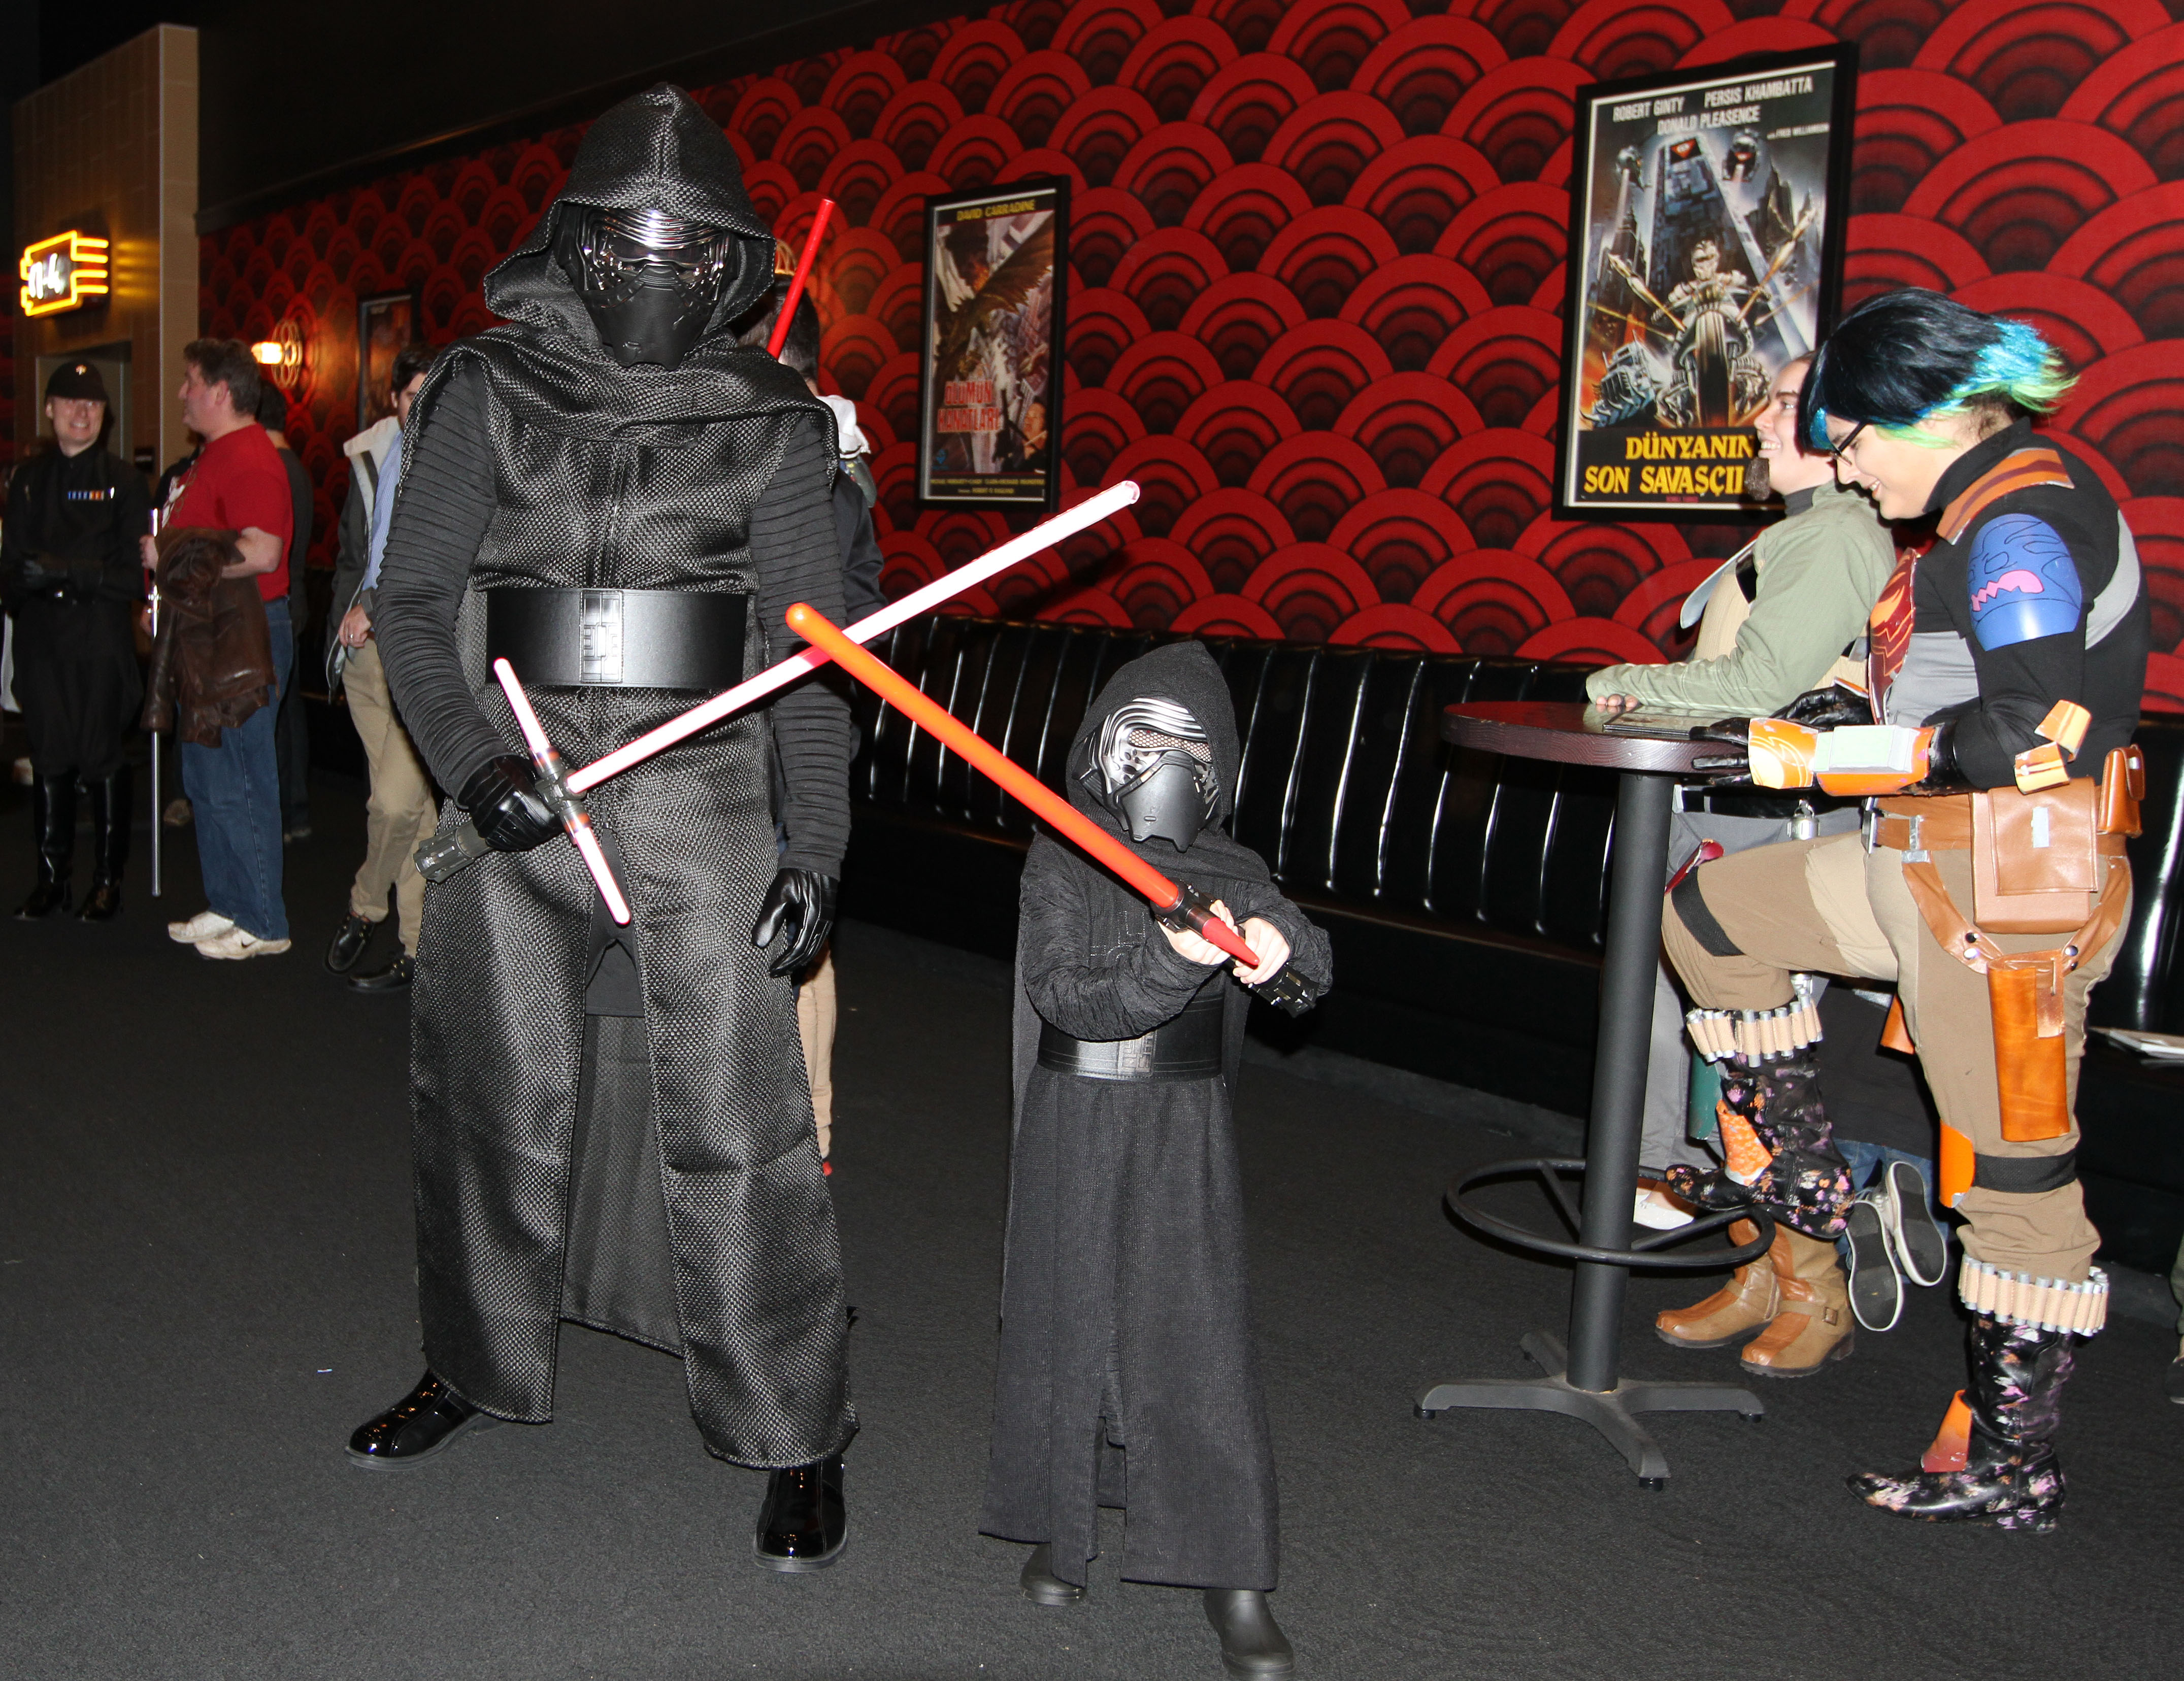 "Big Ren and little Ren cross light sabers at the premiere of ""Star Wars: Episode VII The Force Awakens"" at the Alamo Drafthouse Cinema in Ashburn, Va., on Dec. 17. Photo by Larisa Epatko"